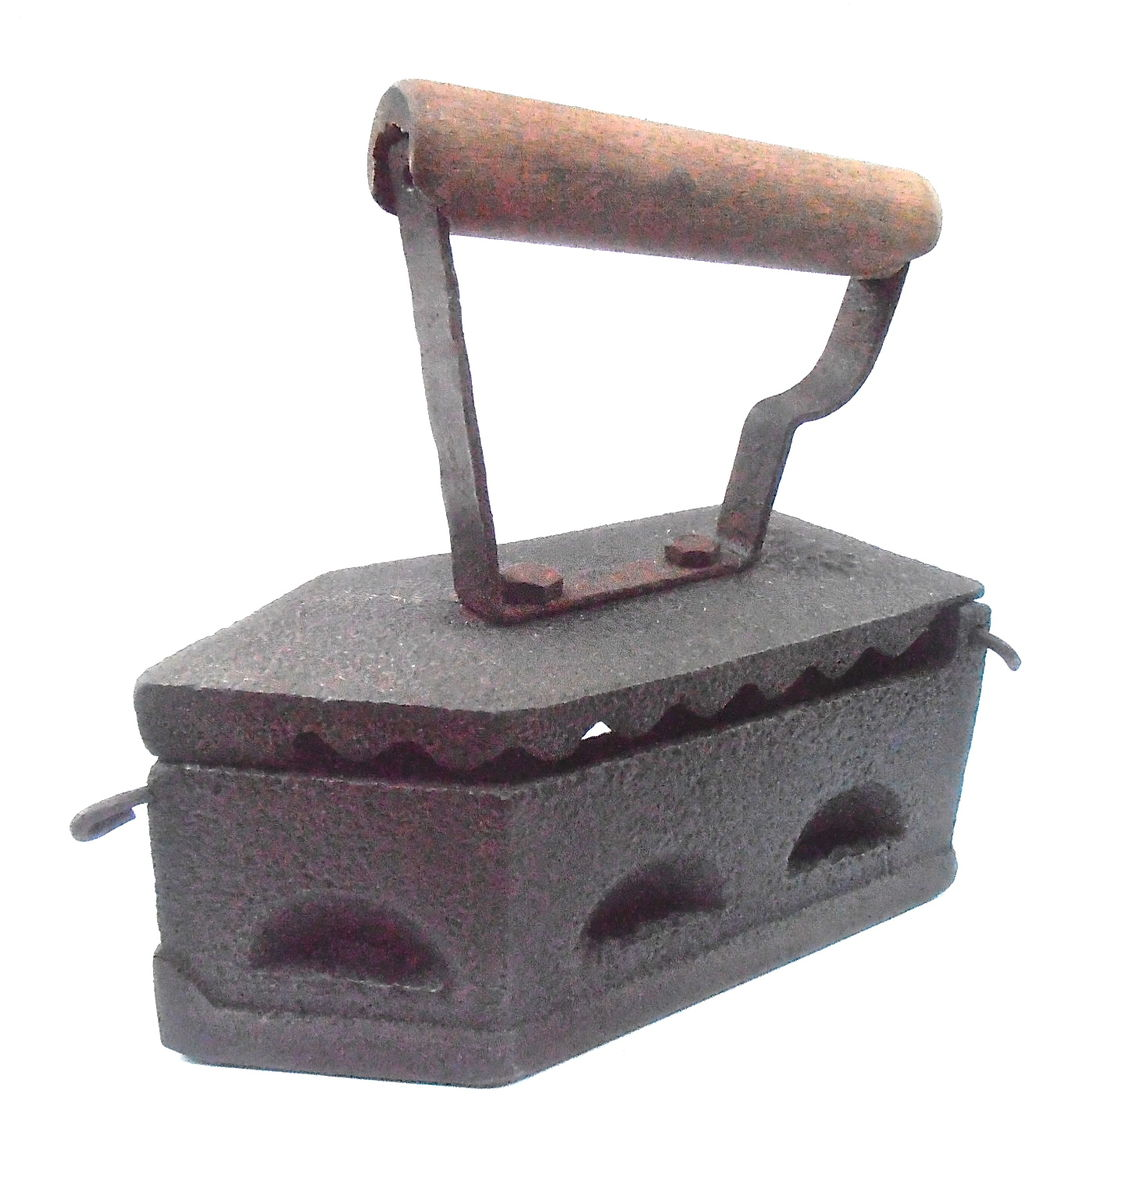 Vintage Sad Fama Coal Pressing Cast Iron Old Antique Rare Clothing Charcoal Wooden Handle Smoothing Forged Solid Metal Latch Hard To Find - product images  of